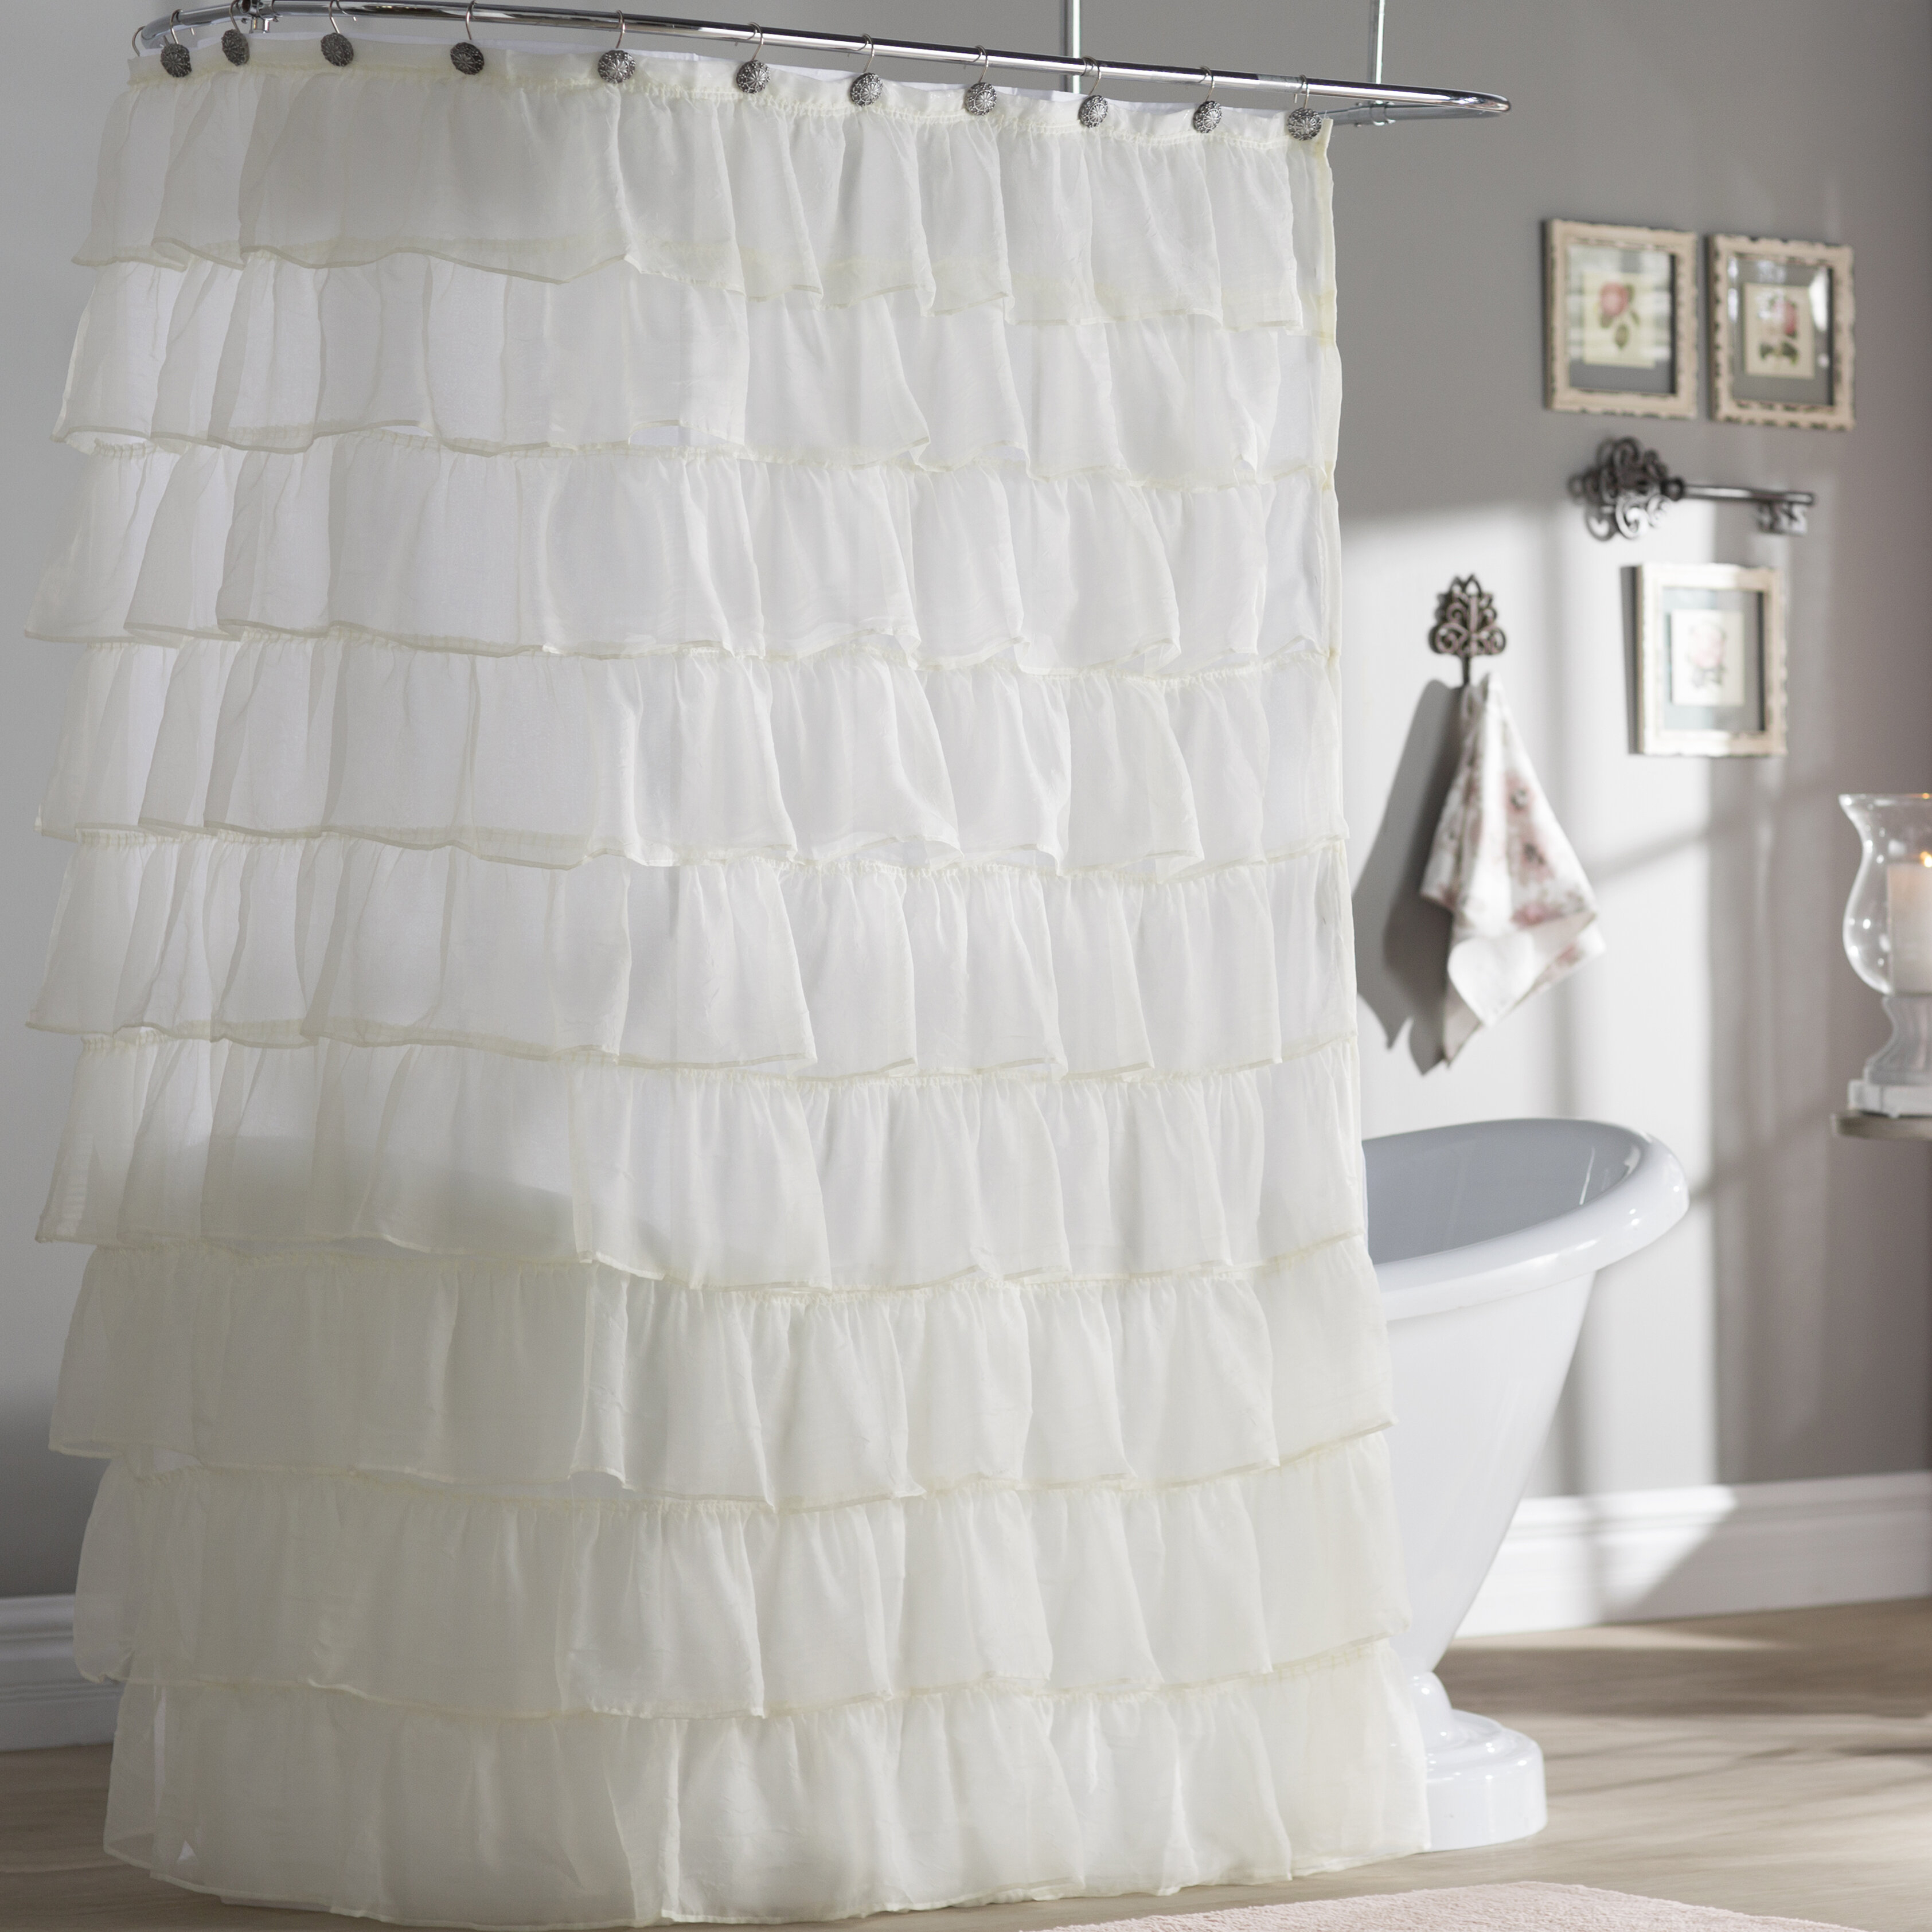 Atia Voile Ruffled Tier Single Shower Curtain Within Sheer Voile Waterfall Ruffled Tier Single Curtain Panels (View 15 of 20)